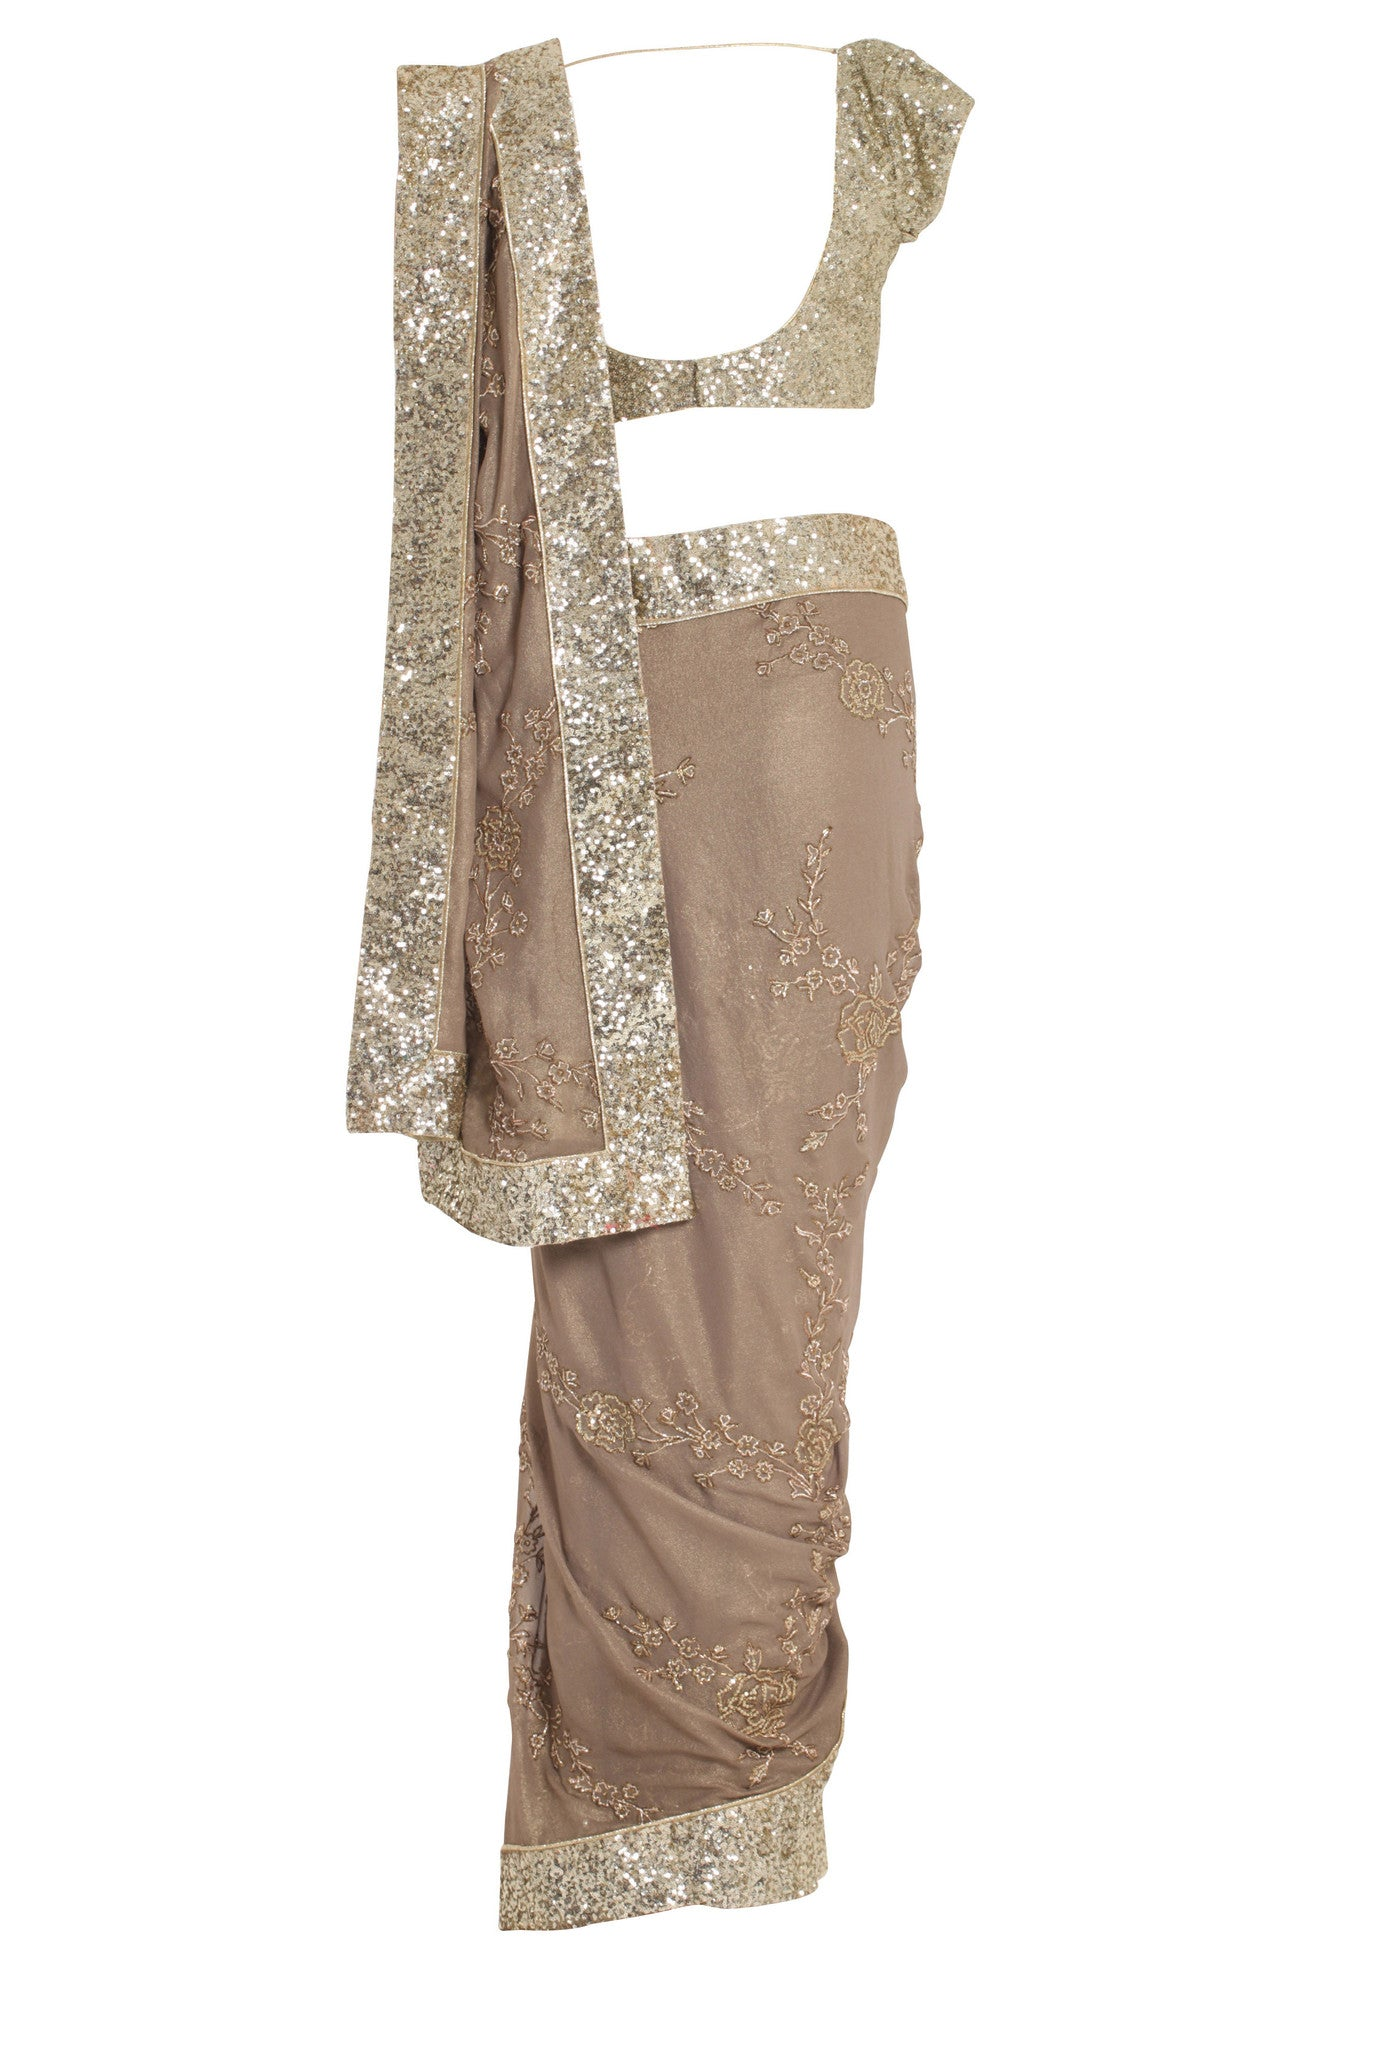 Gold Jewelled Silk Saree Seema Khan Mannequin Back